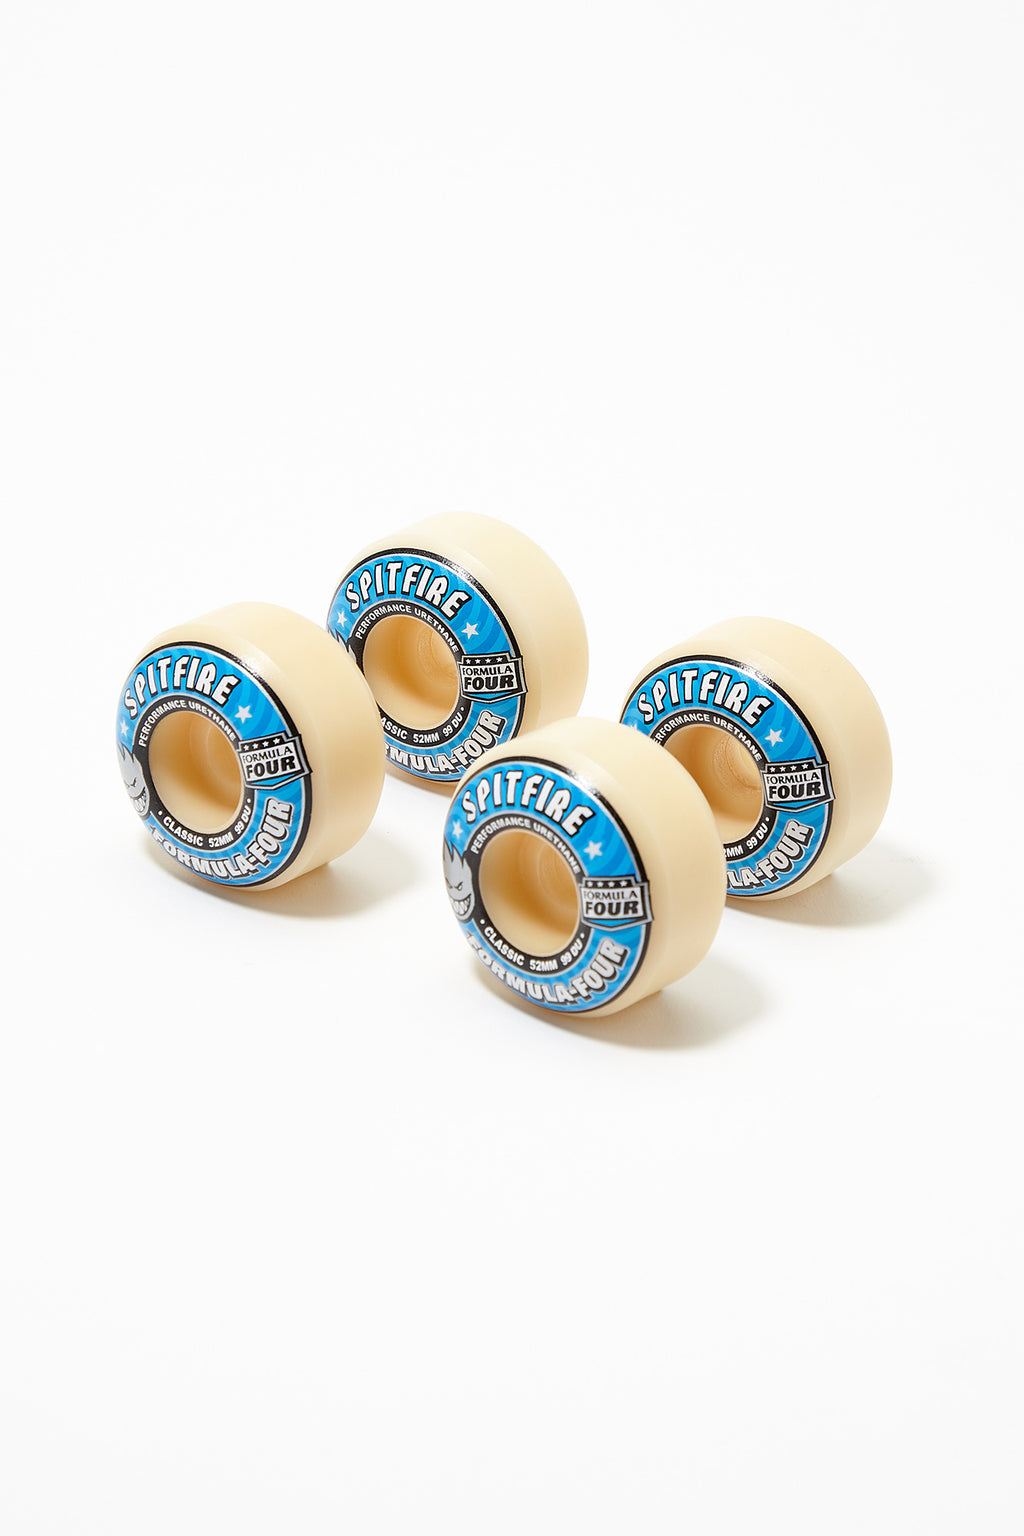 Spitfire F4 99D Classic 52mm Skateboard Wheels